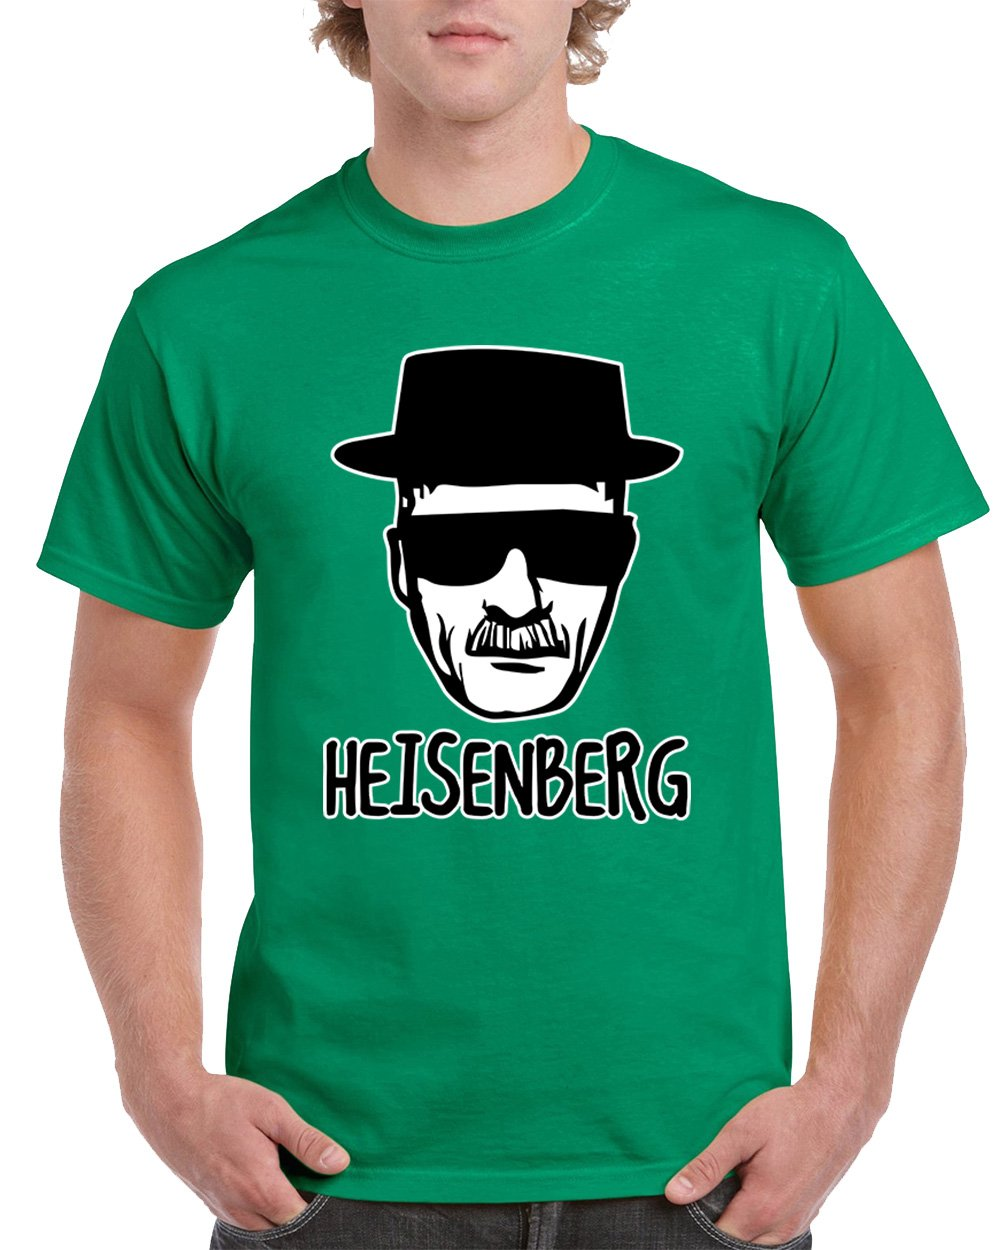 Heisenberg Breaking Bad Character Men's T-Shirts Round NeckTee Shirts for Men(Green,Small)